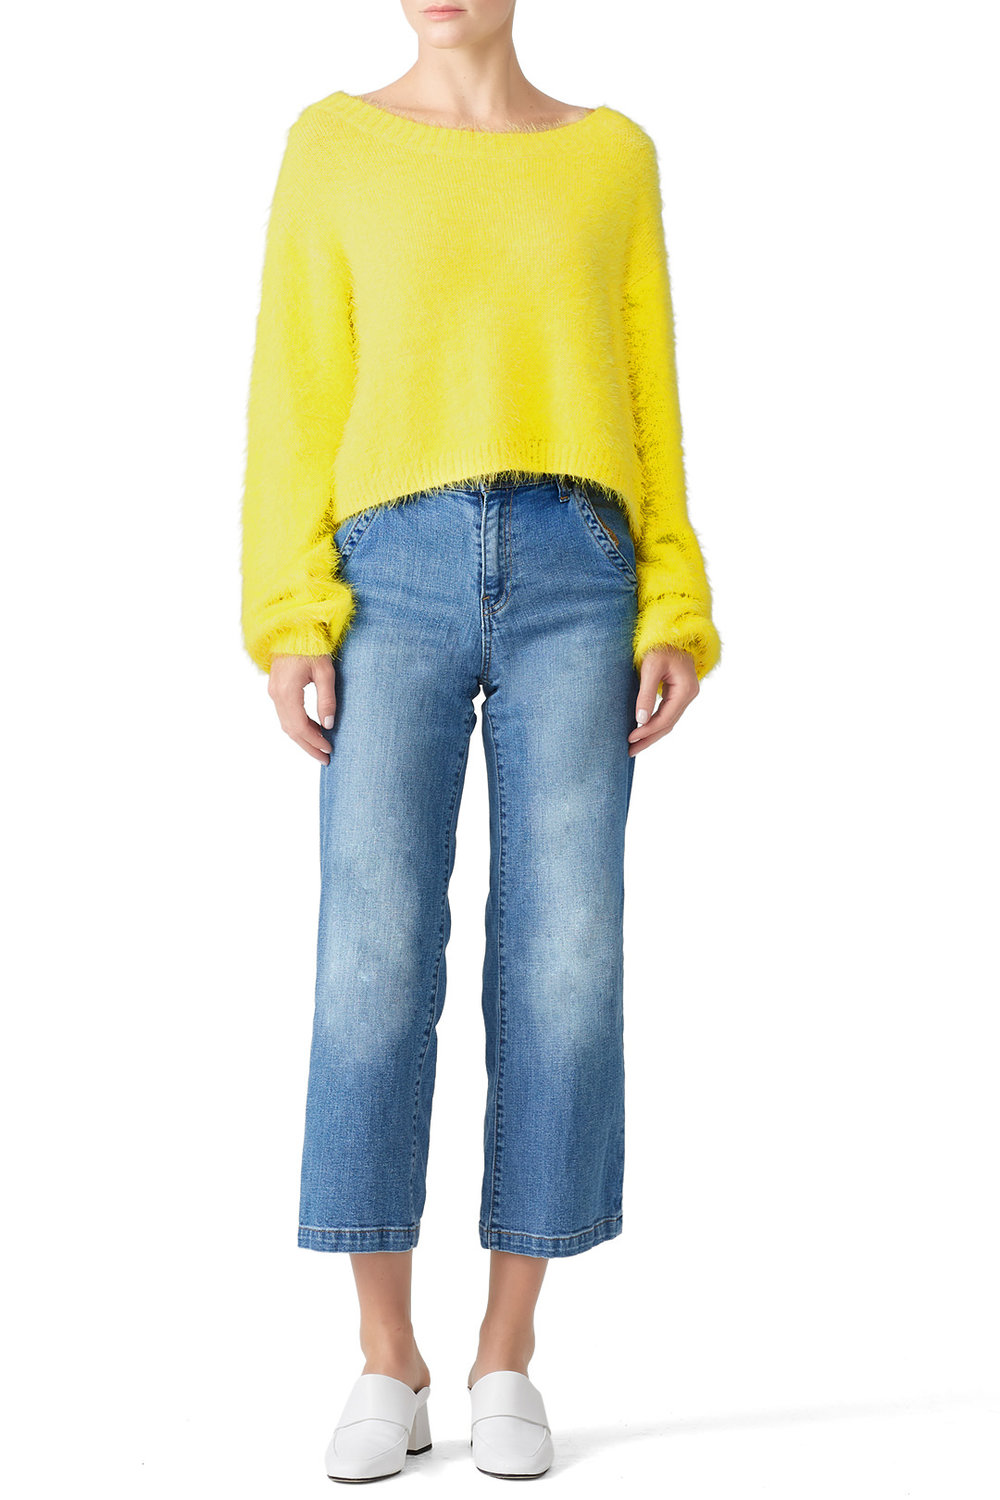 Somedays Lovin Clover Fields Sweater - Yellow? For the holidays? WHY NOT!